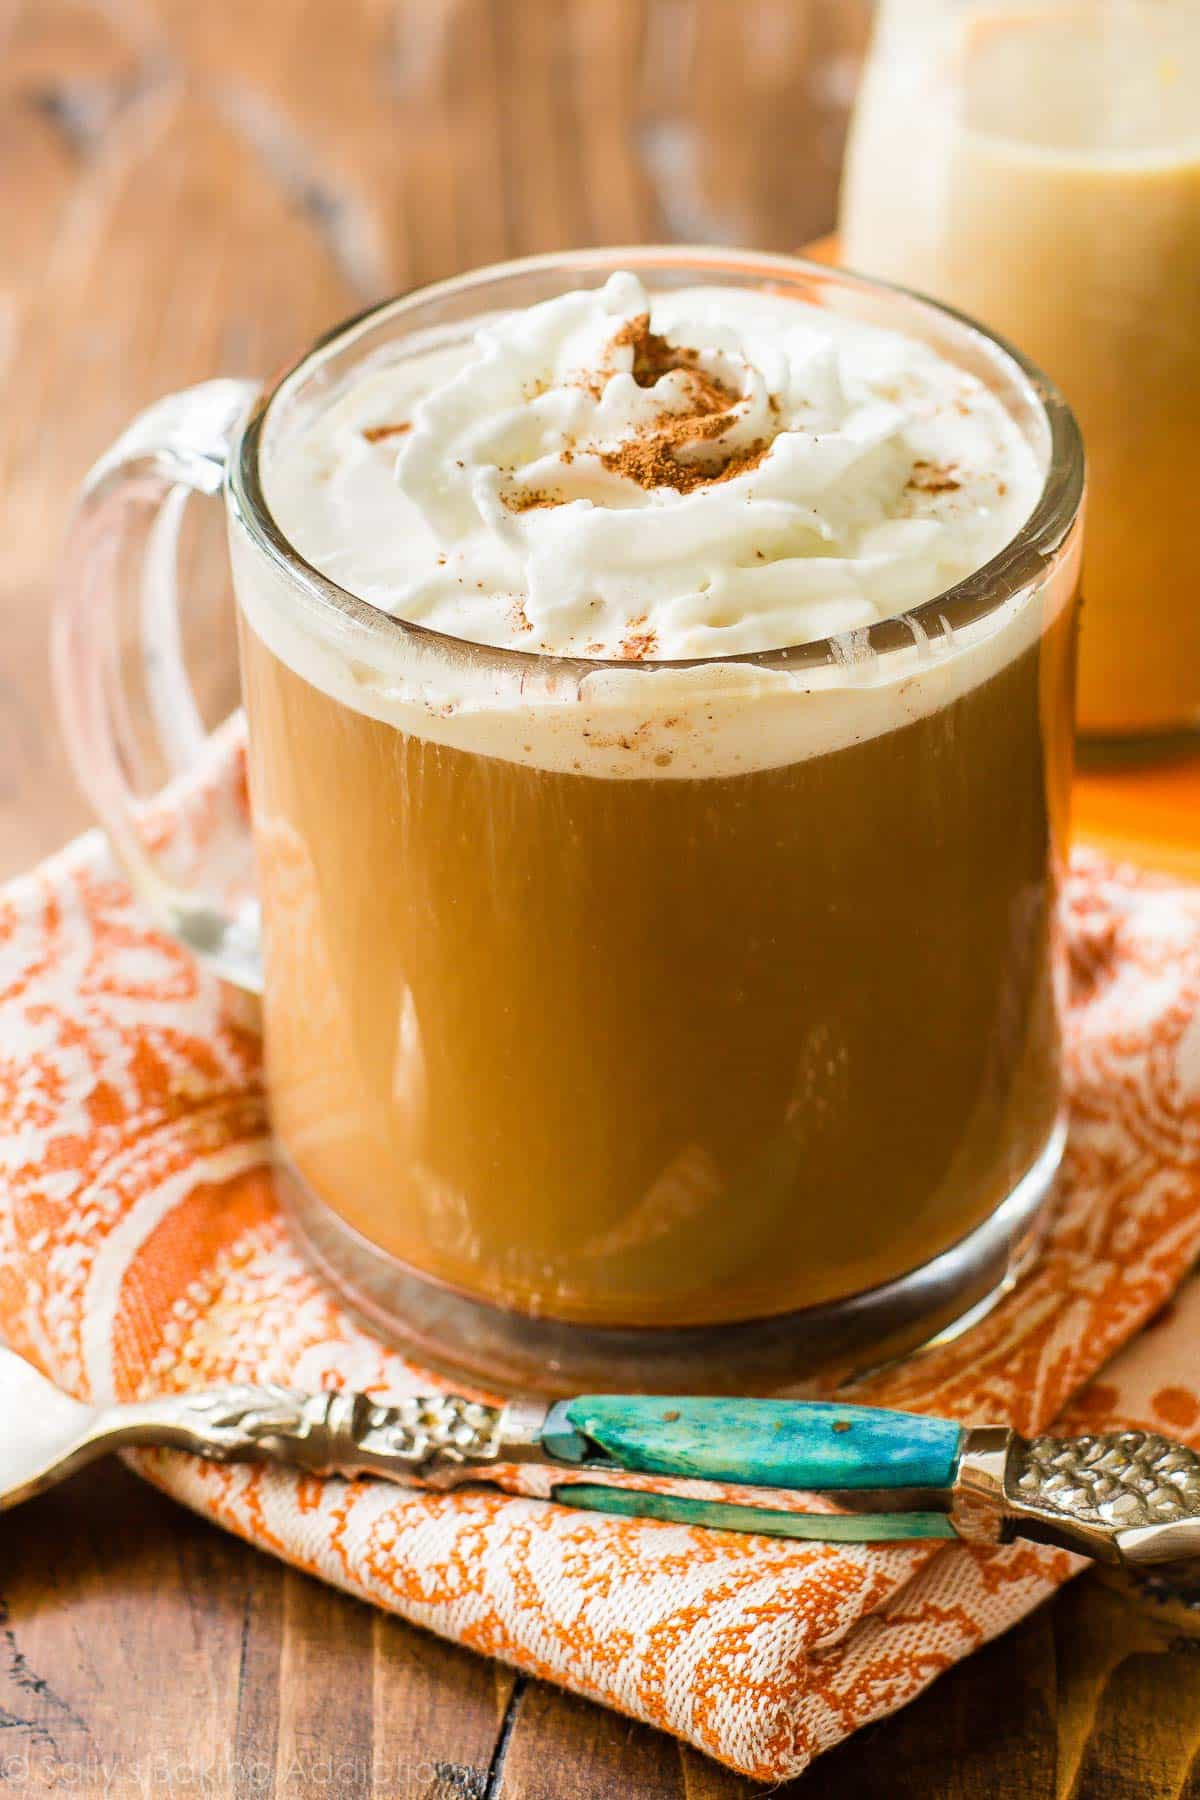 Homemade pumpkin coffee creamer made in 15 minutes with REAL pumpkin puree. Inexpensive and easy!! sallysbakingaddiction.com